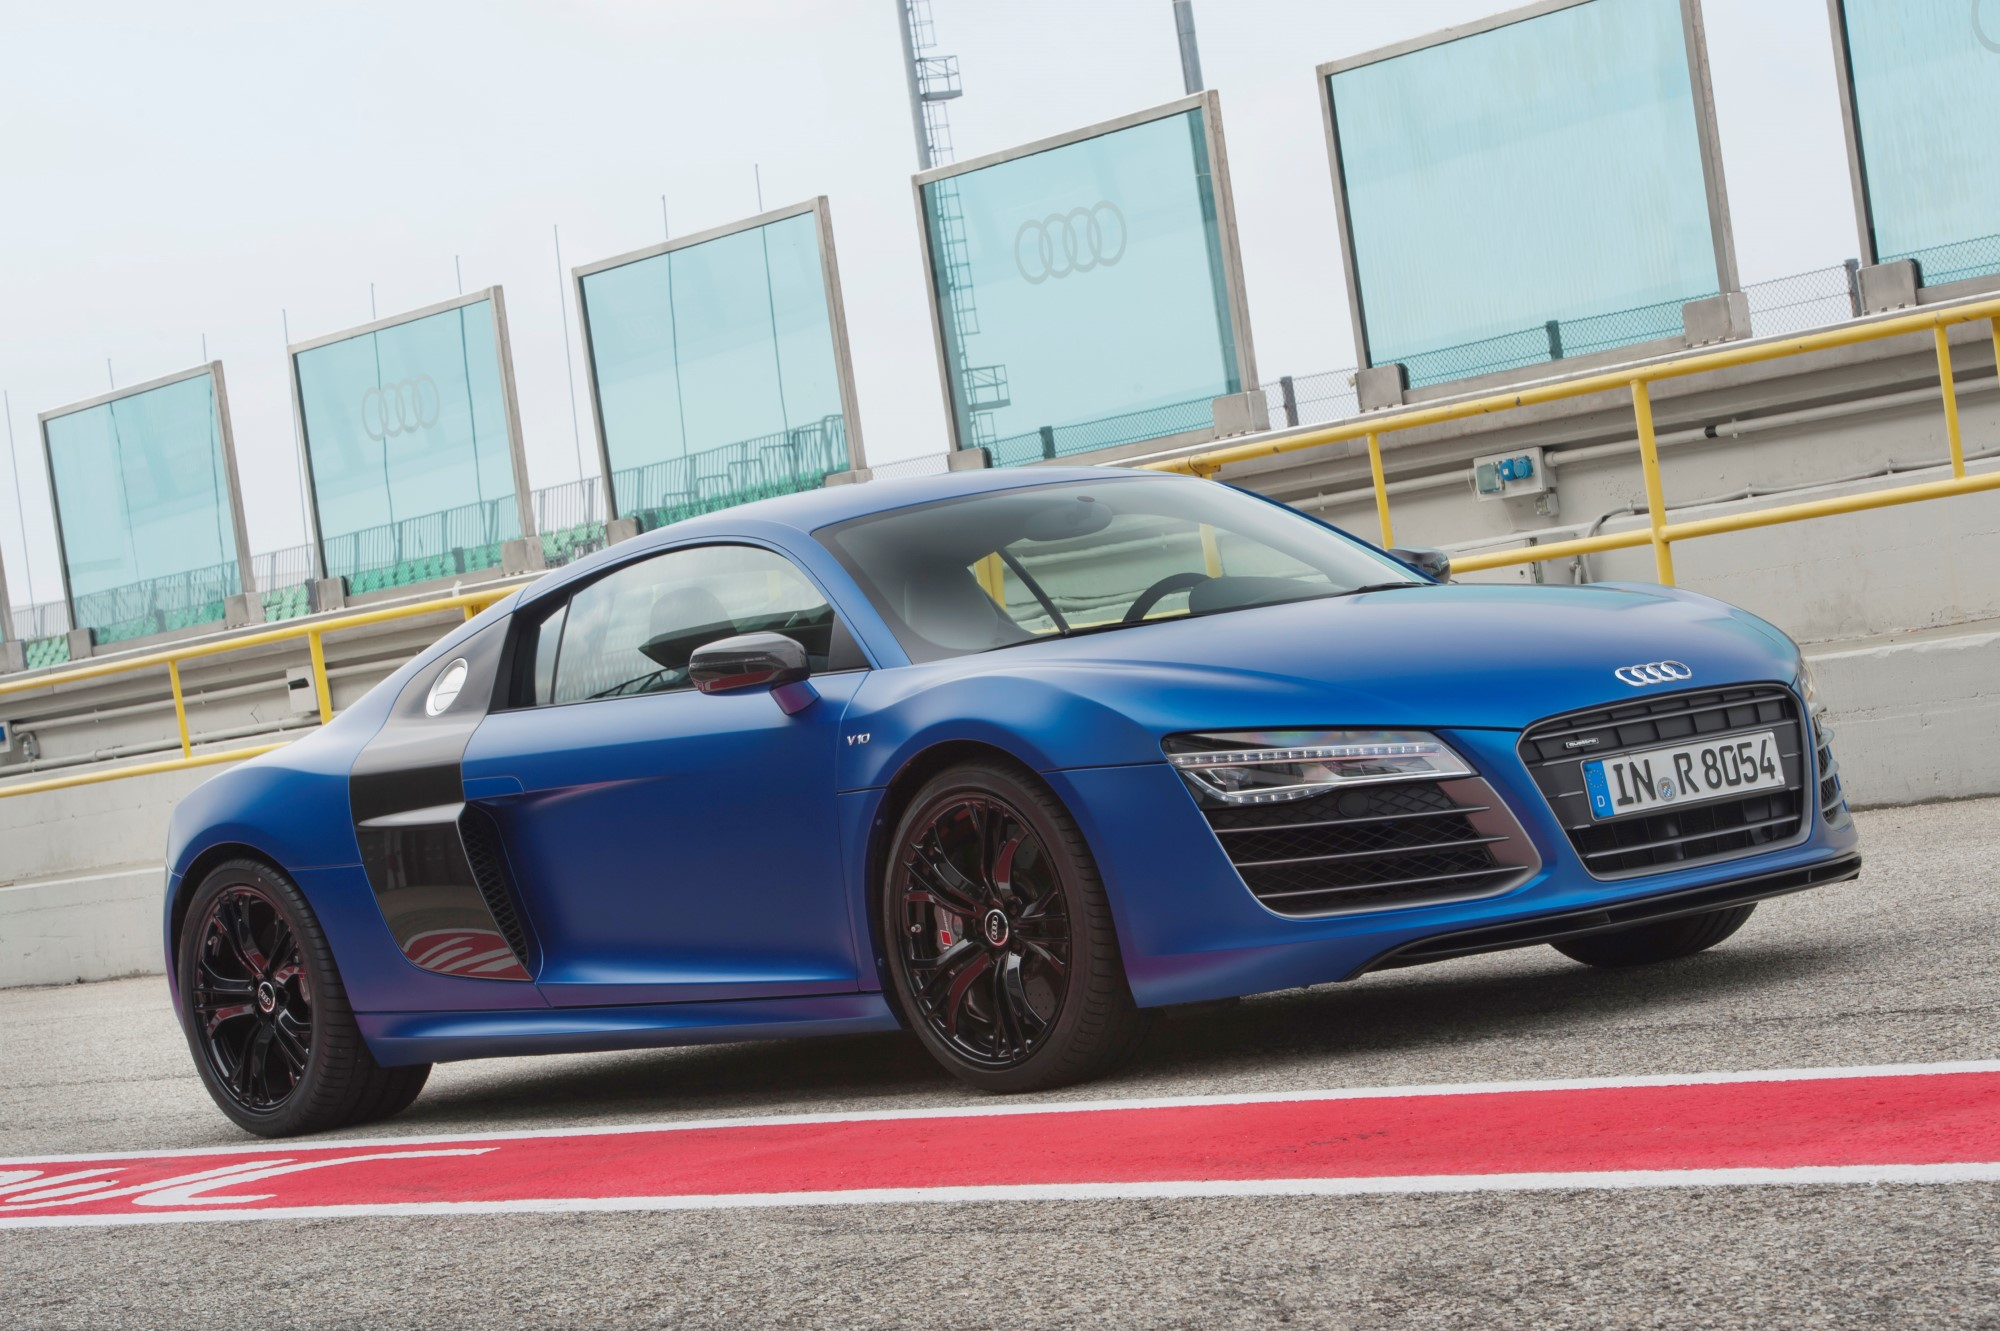 new and used audi r8 prices photos reviews specs the autos post. Black Bedroom Furniture Sets. Home Design Ideas